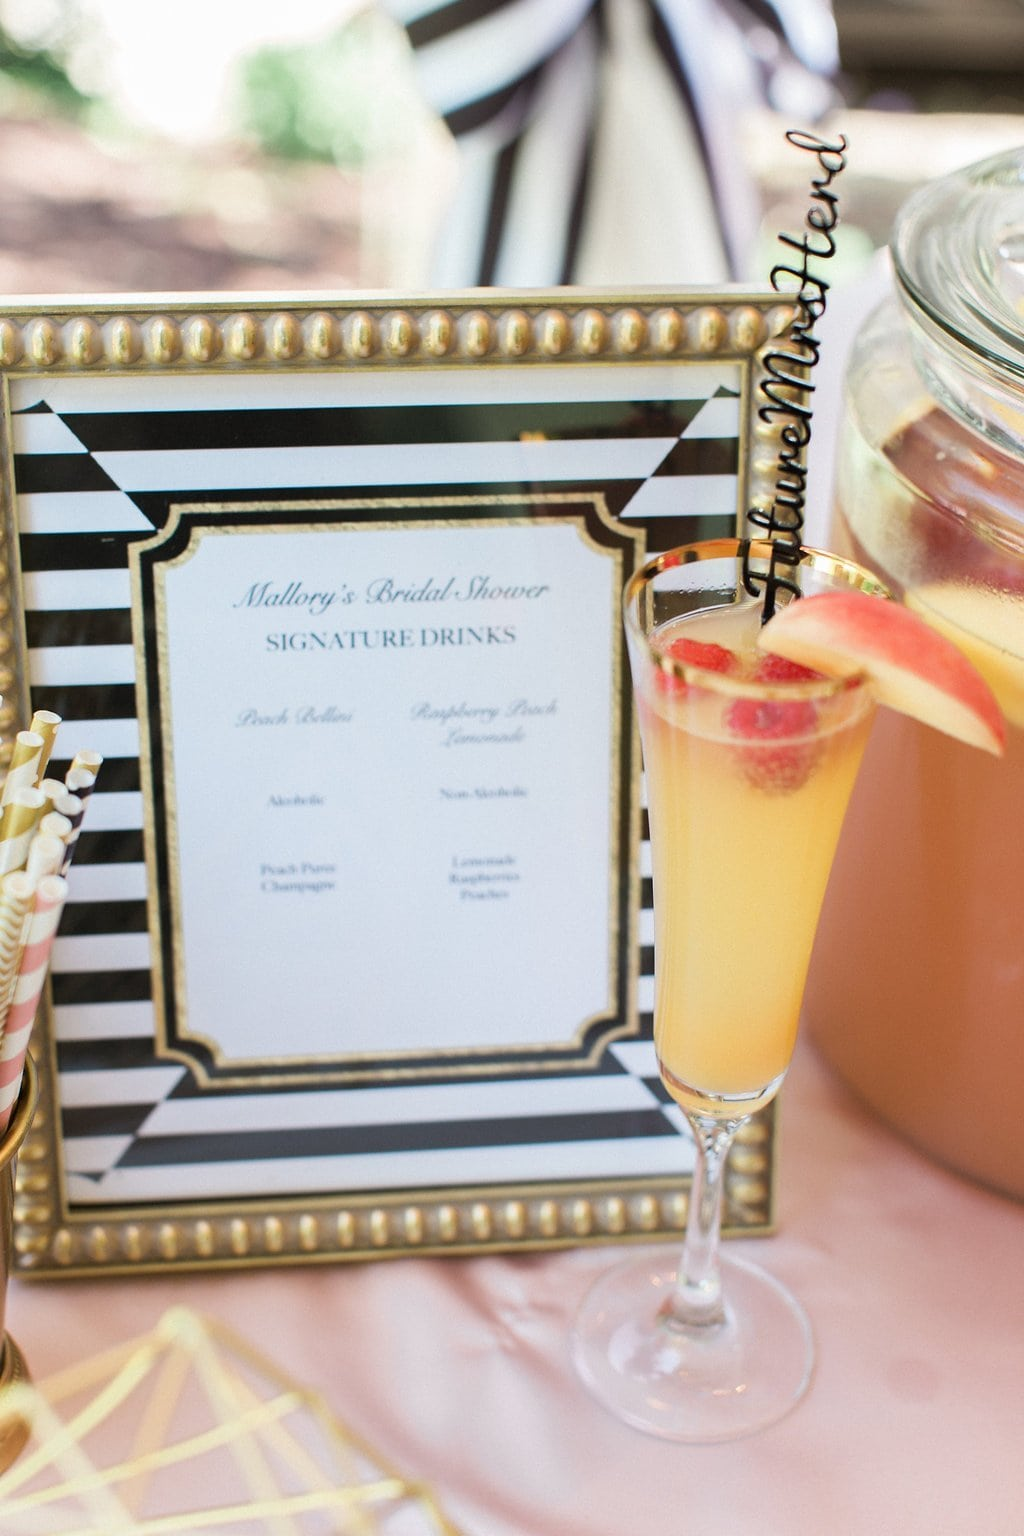 signature drink list with cocktail at bridal shower - Black & White Kate Spade Inspired Bridal Shower